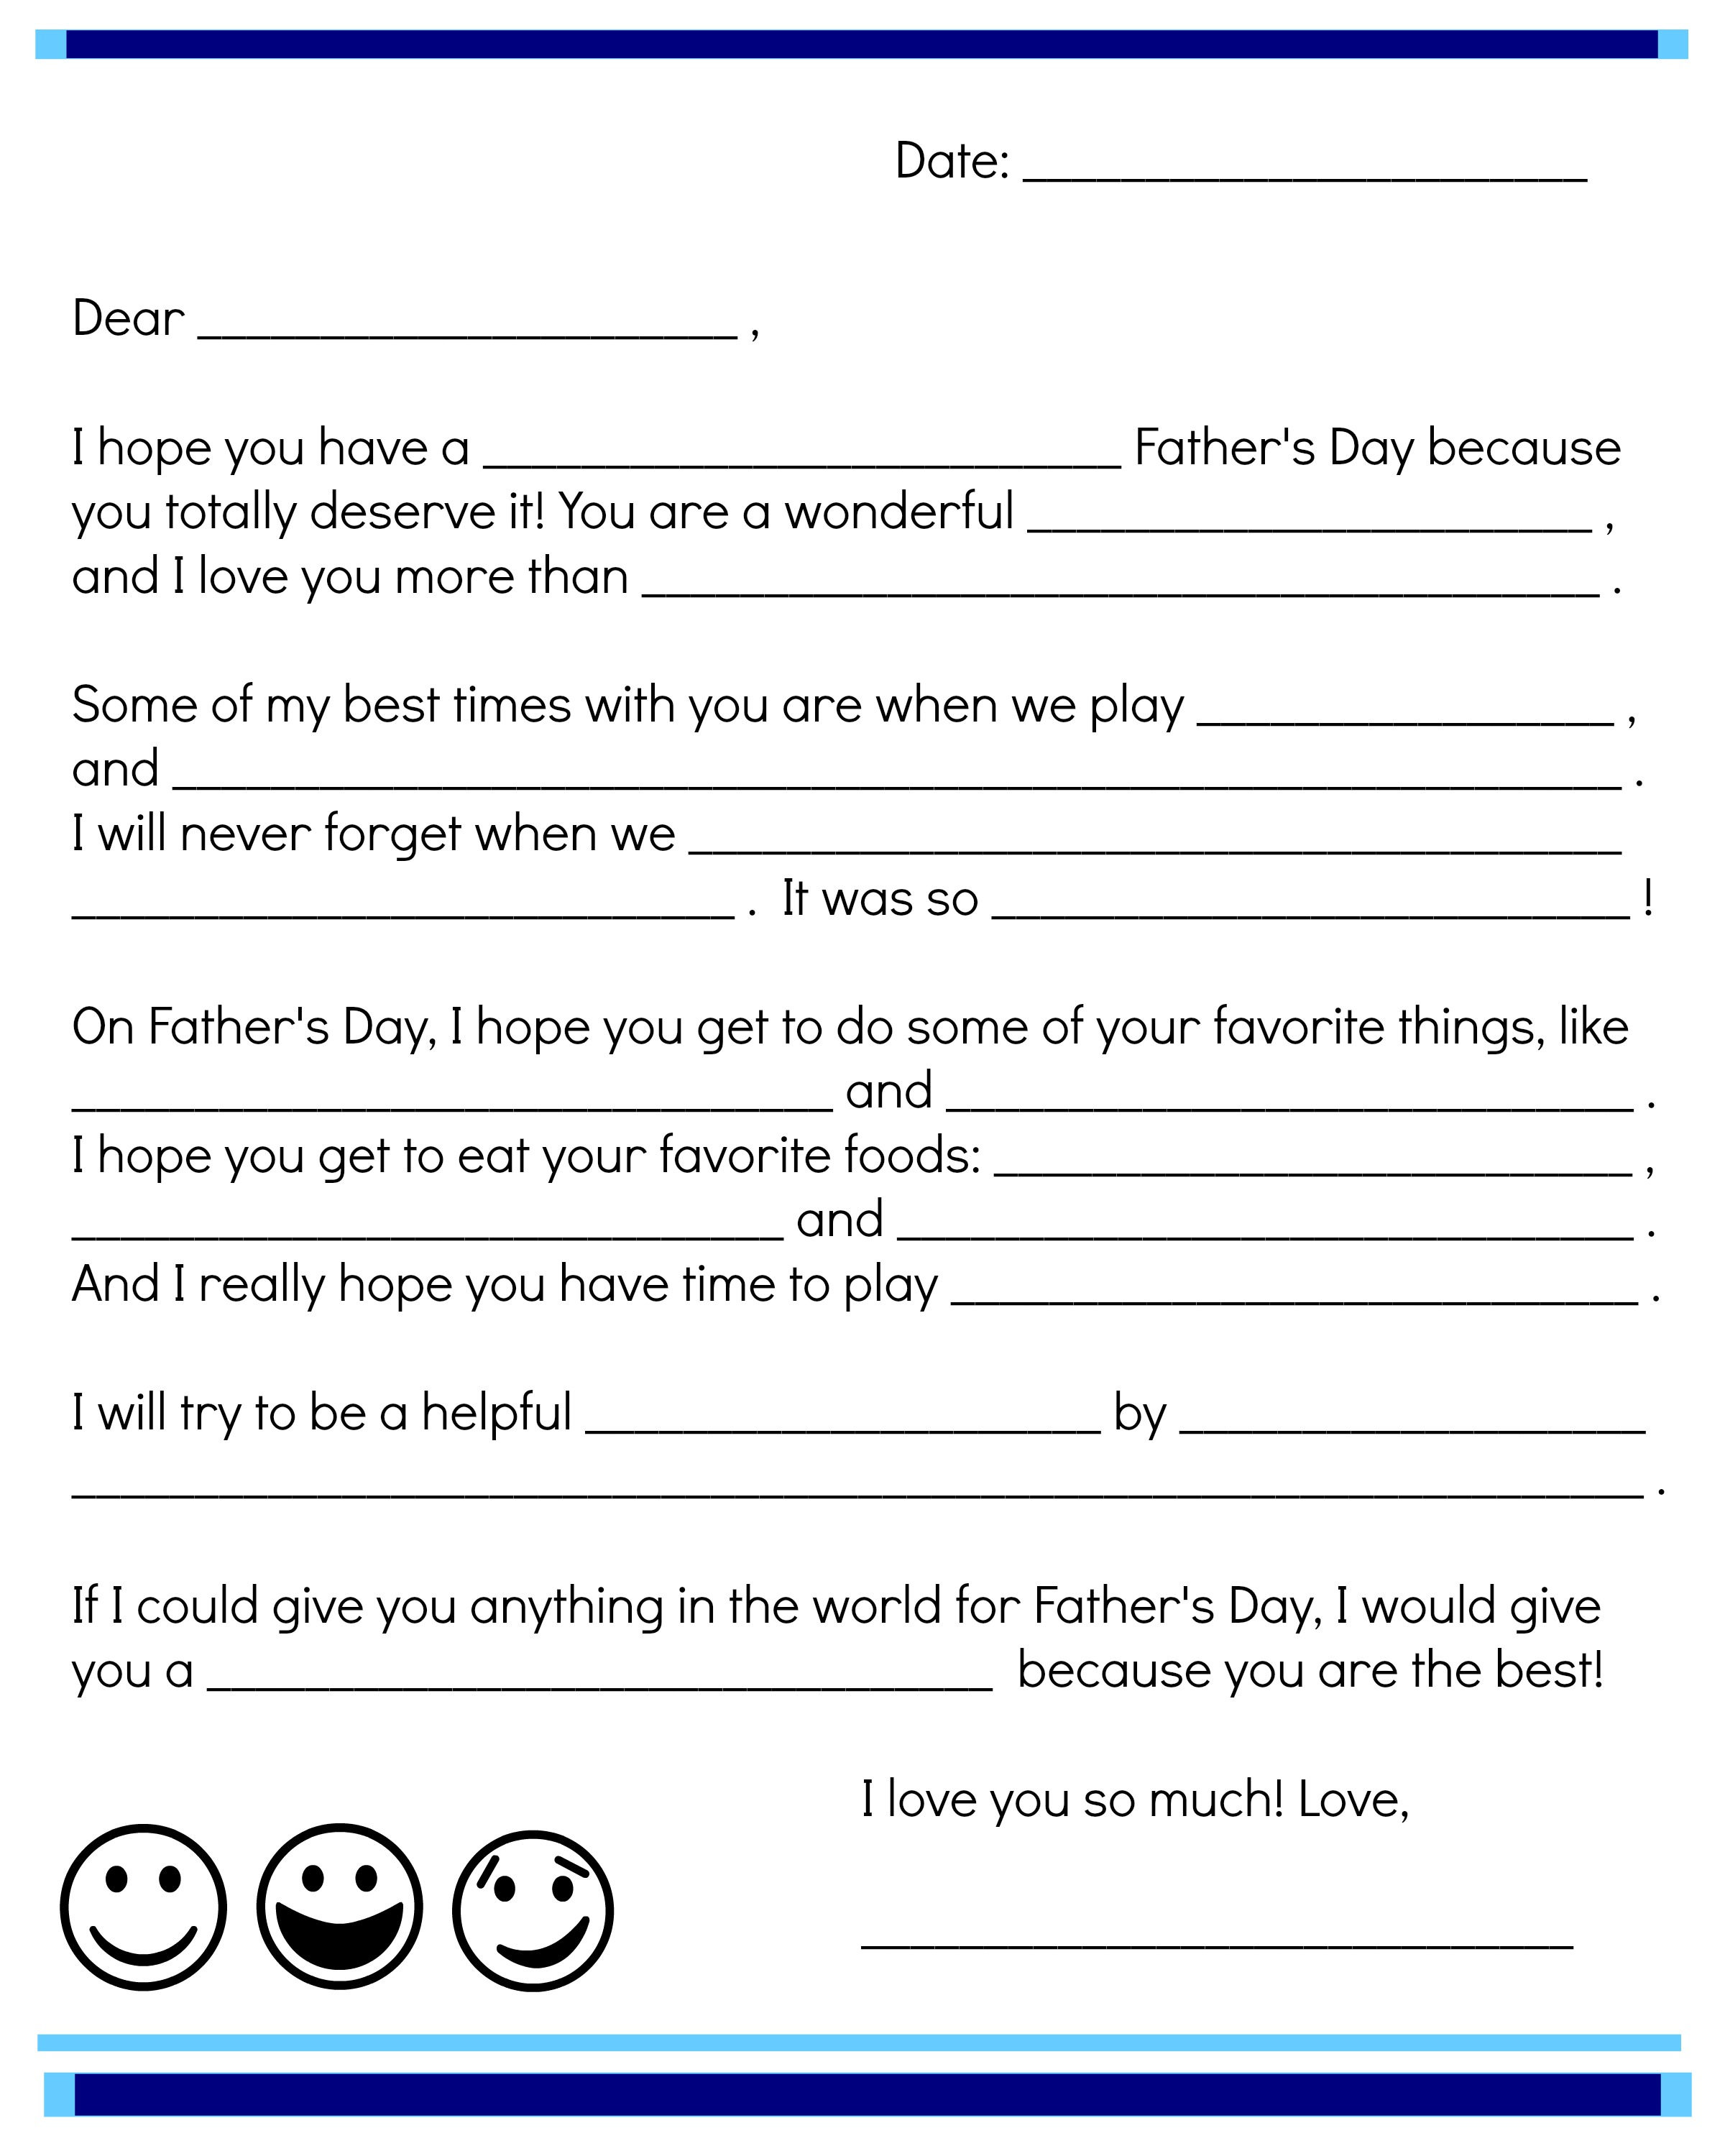 photograph relating to The Father's Love Letter Printable named Fathers Working day Fill-Within Notice Printable Scholastic Mother and father